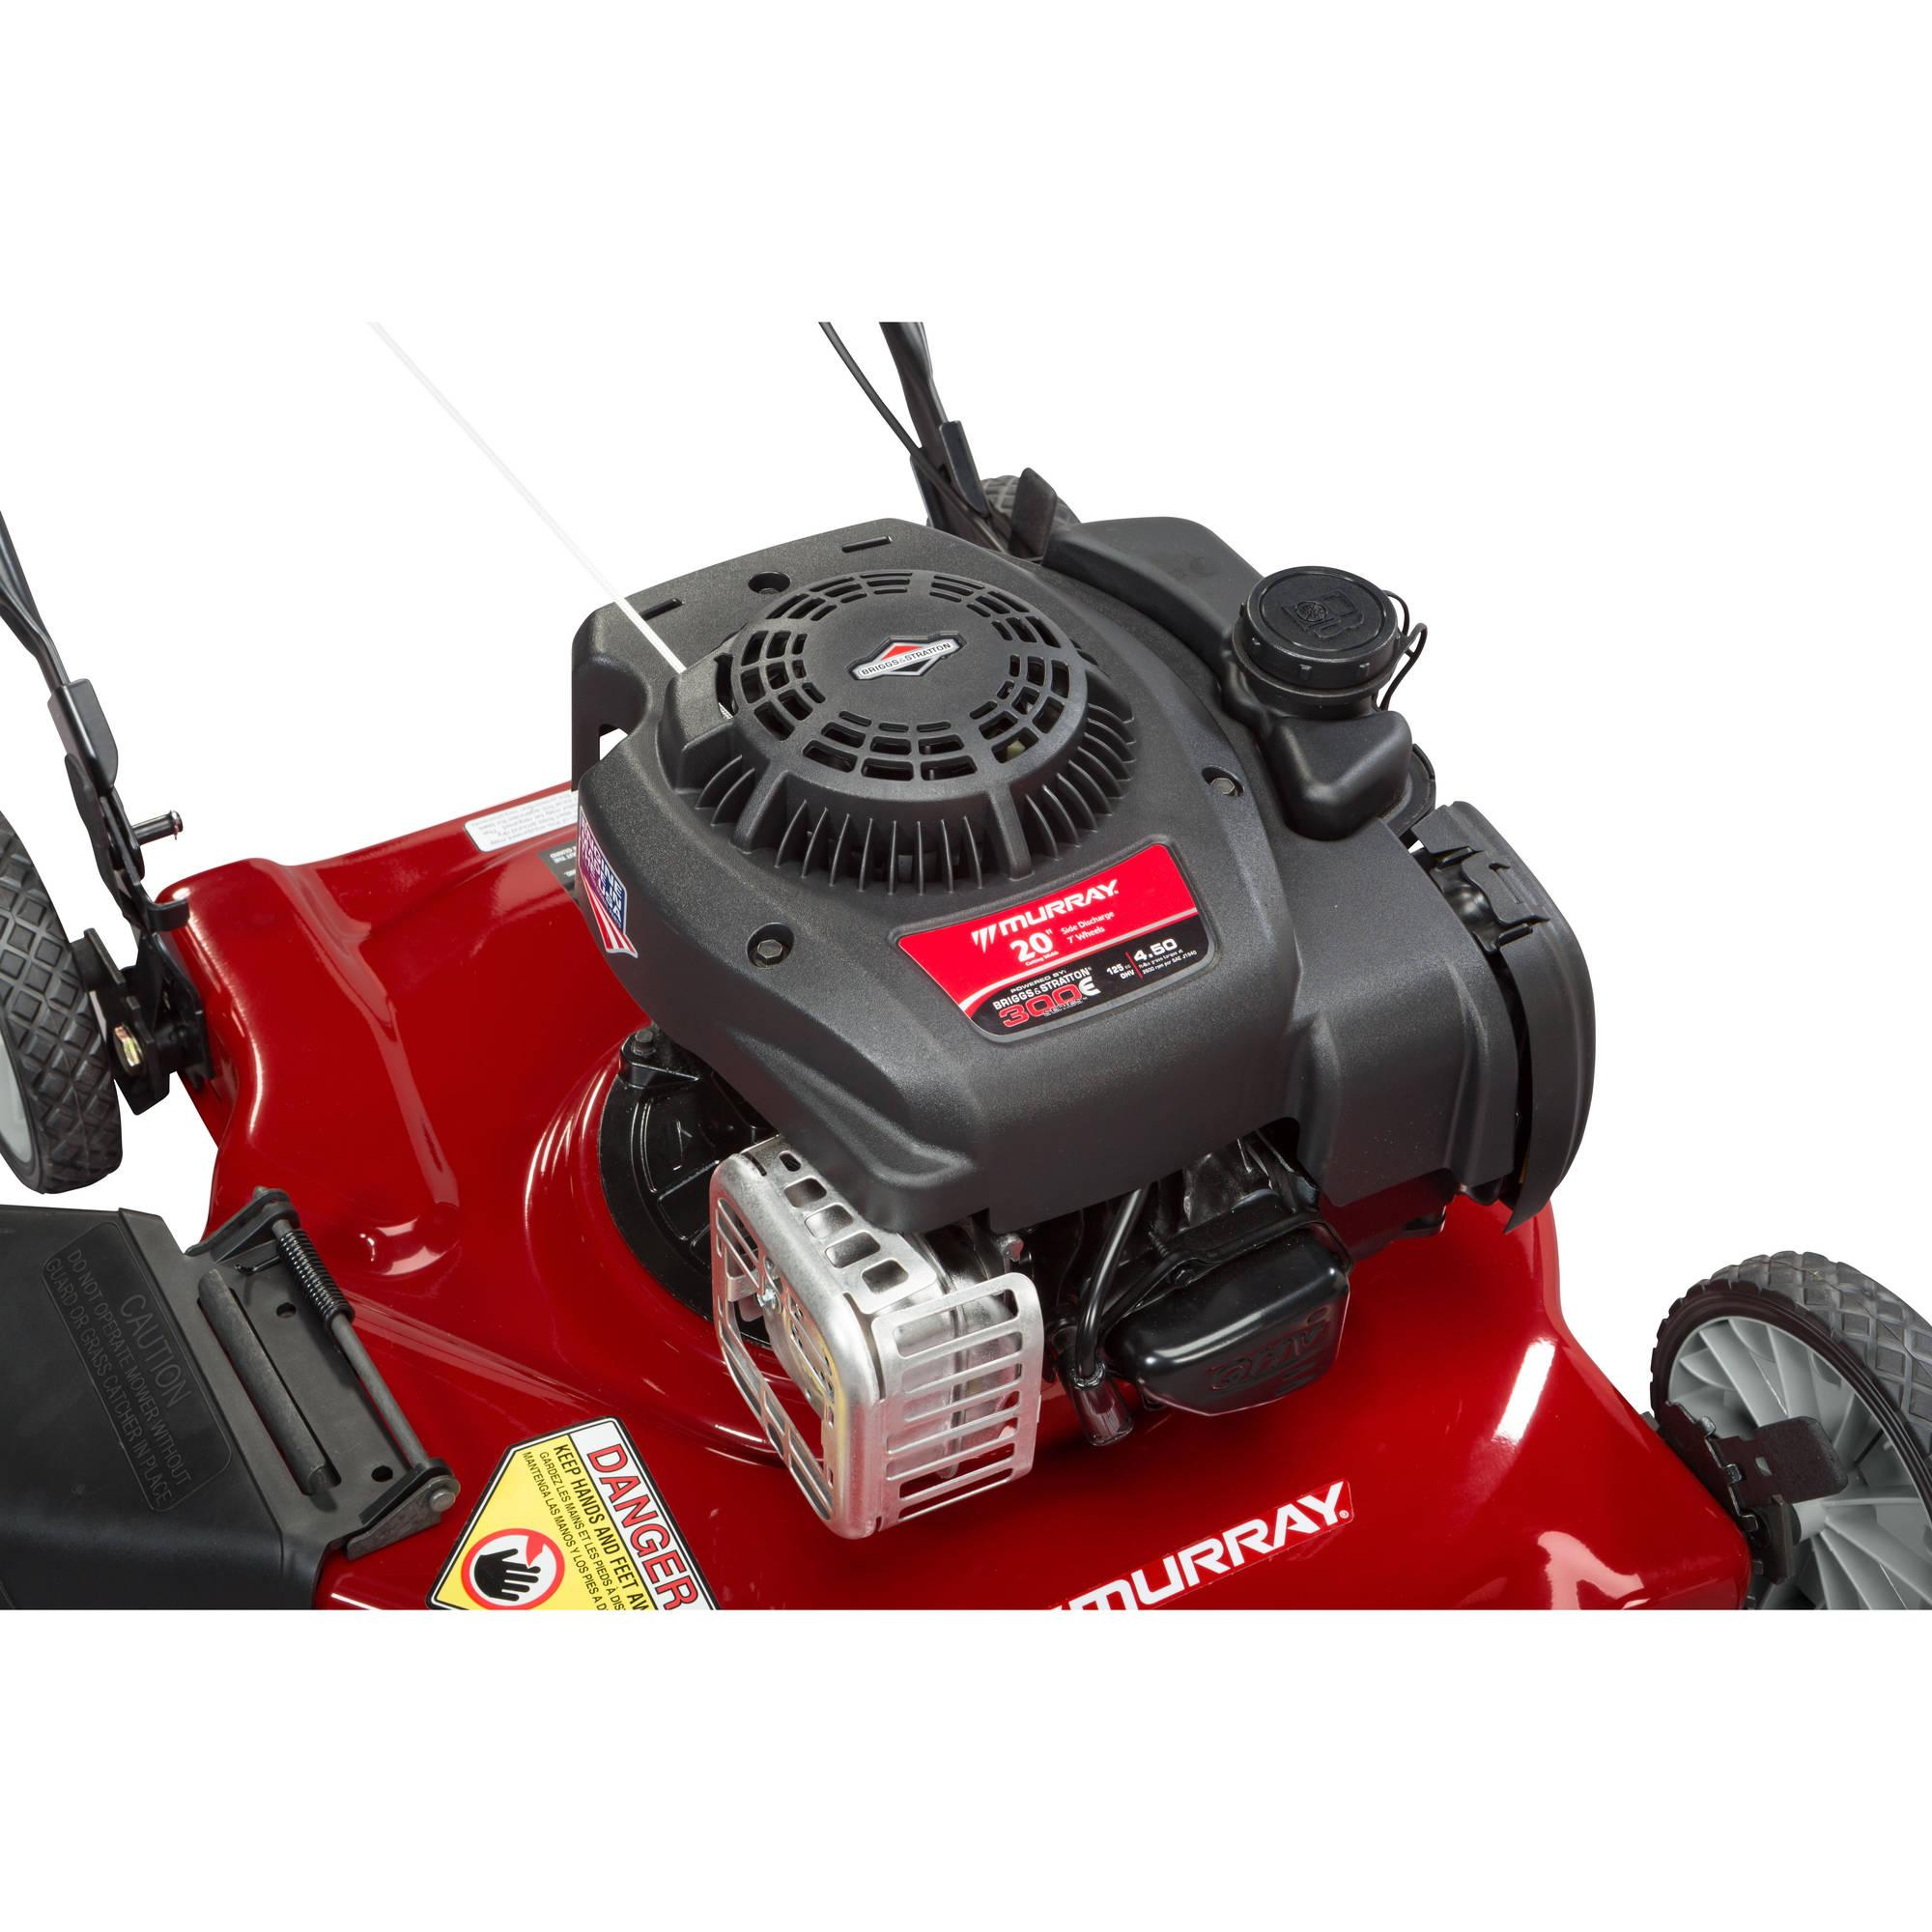 Murray 20 gas powered lawn mower ebay for Best motor oil for lawn mowers